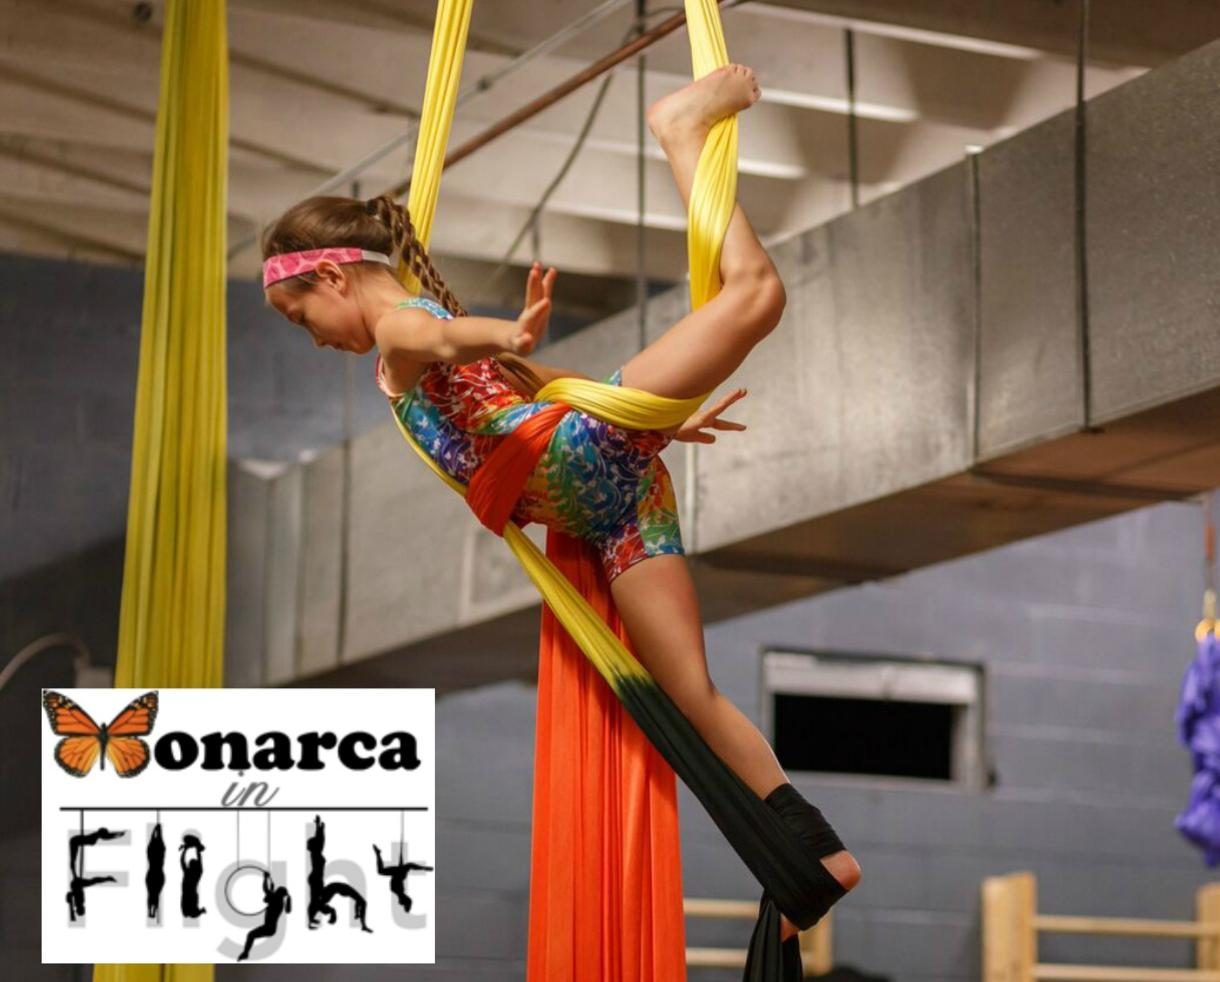 $150 for 90-Minute Birthday Party for up to 10 Kids at Monarca in Flight - Ages 6-12 - Falls Church ($50 Off)